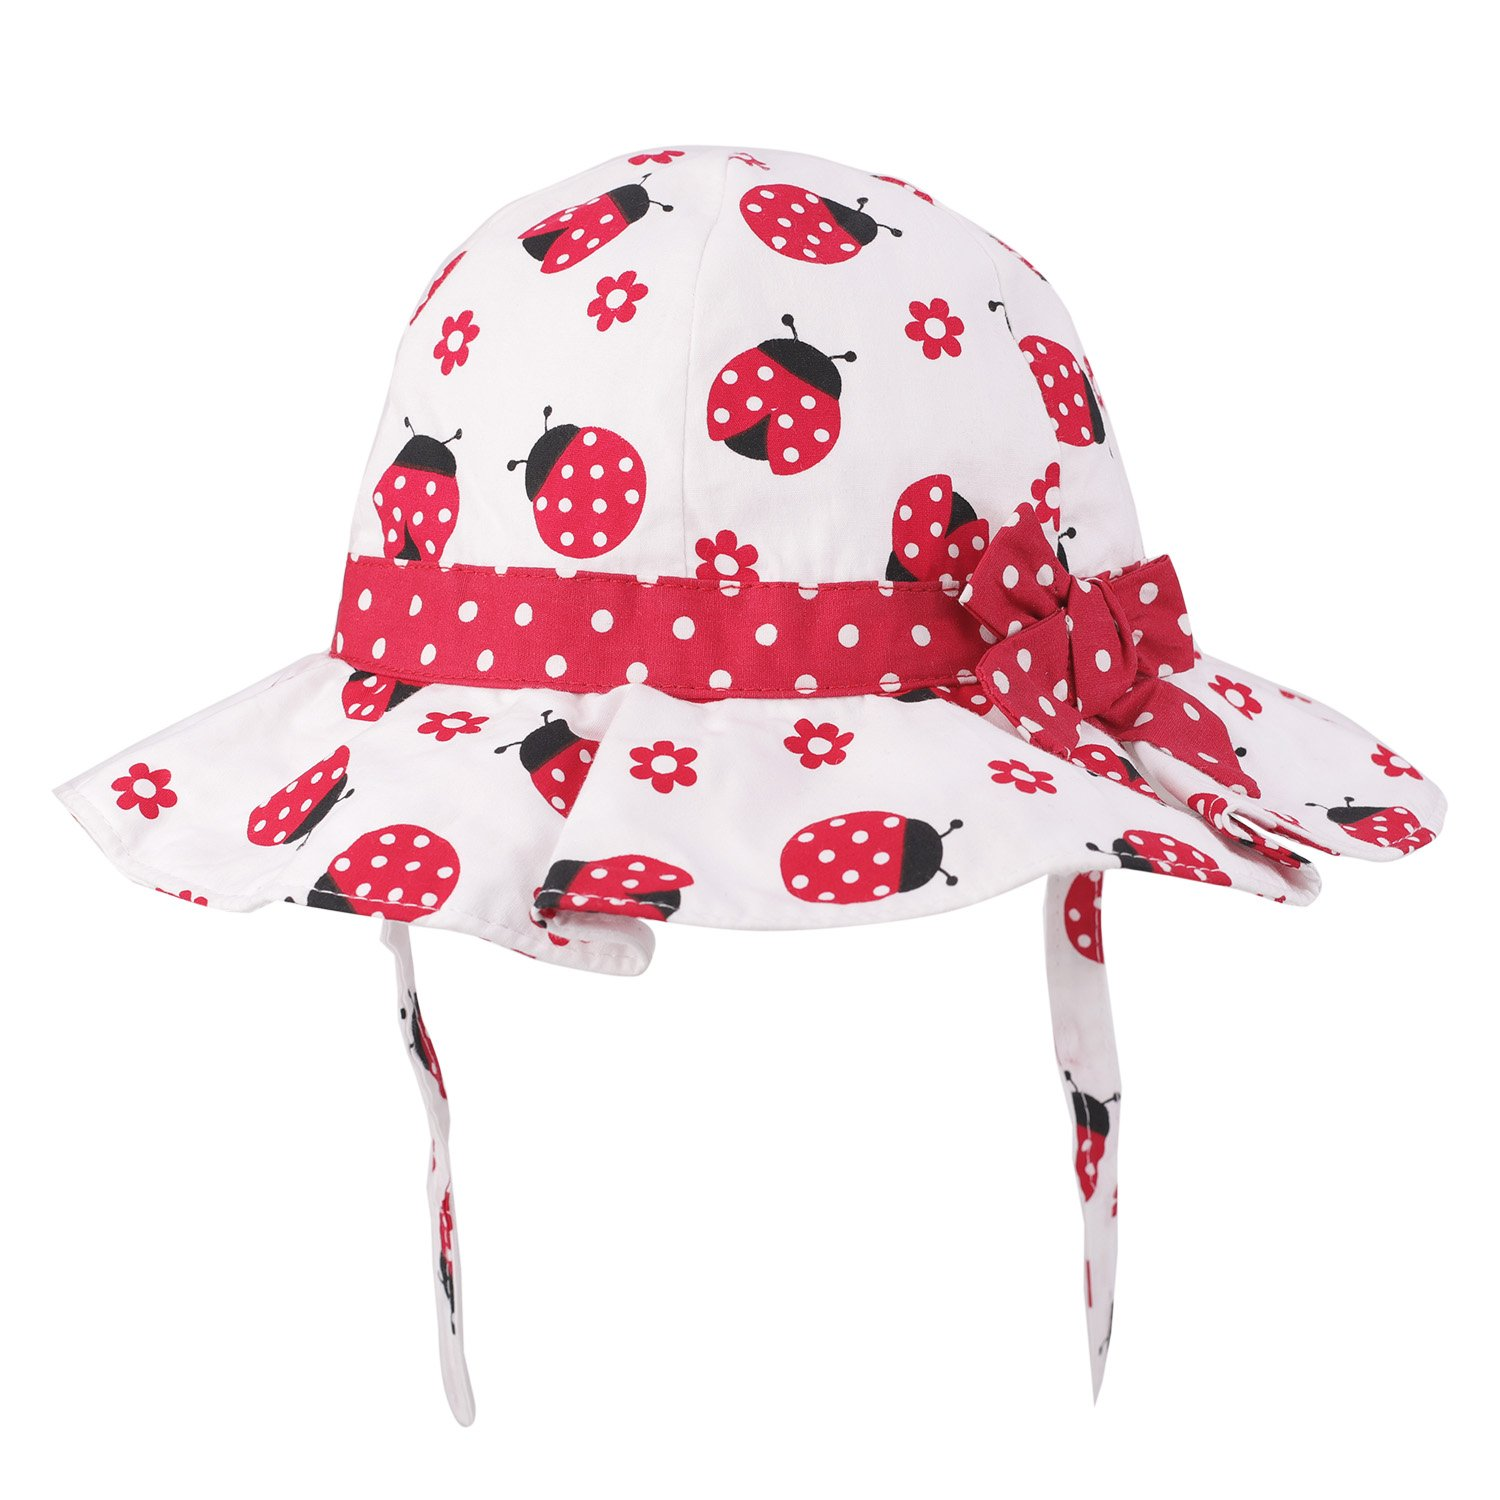 Baby Girls Toddler Cotton Bucket Hat Summer Bowknot Hat Printed Sun Hat UV Protection (6 Months - 4 Years) (6-12 Months, Red/Beetle)